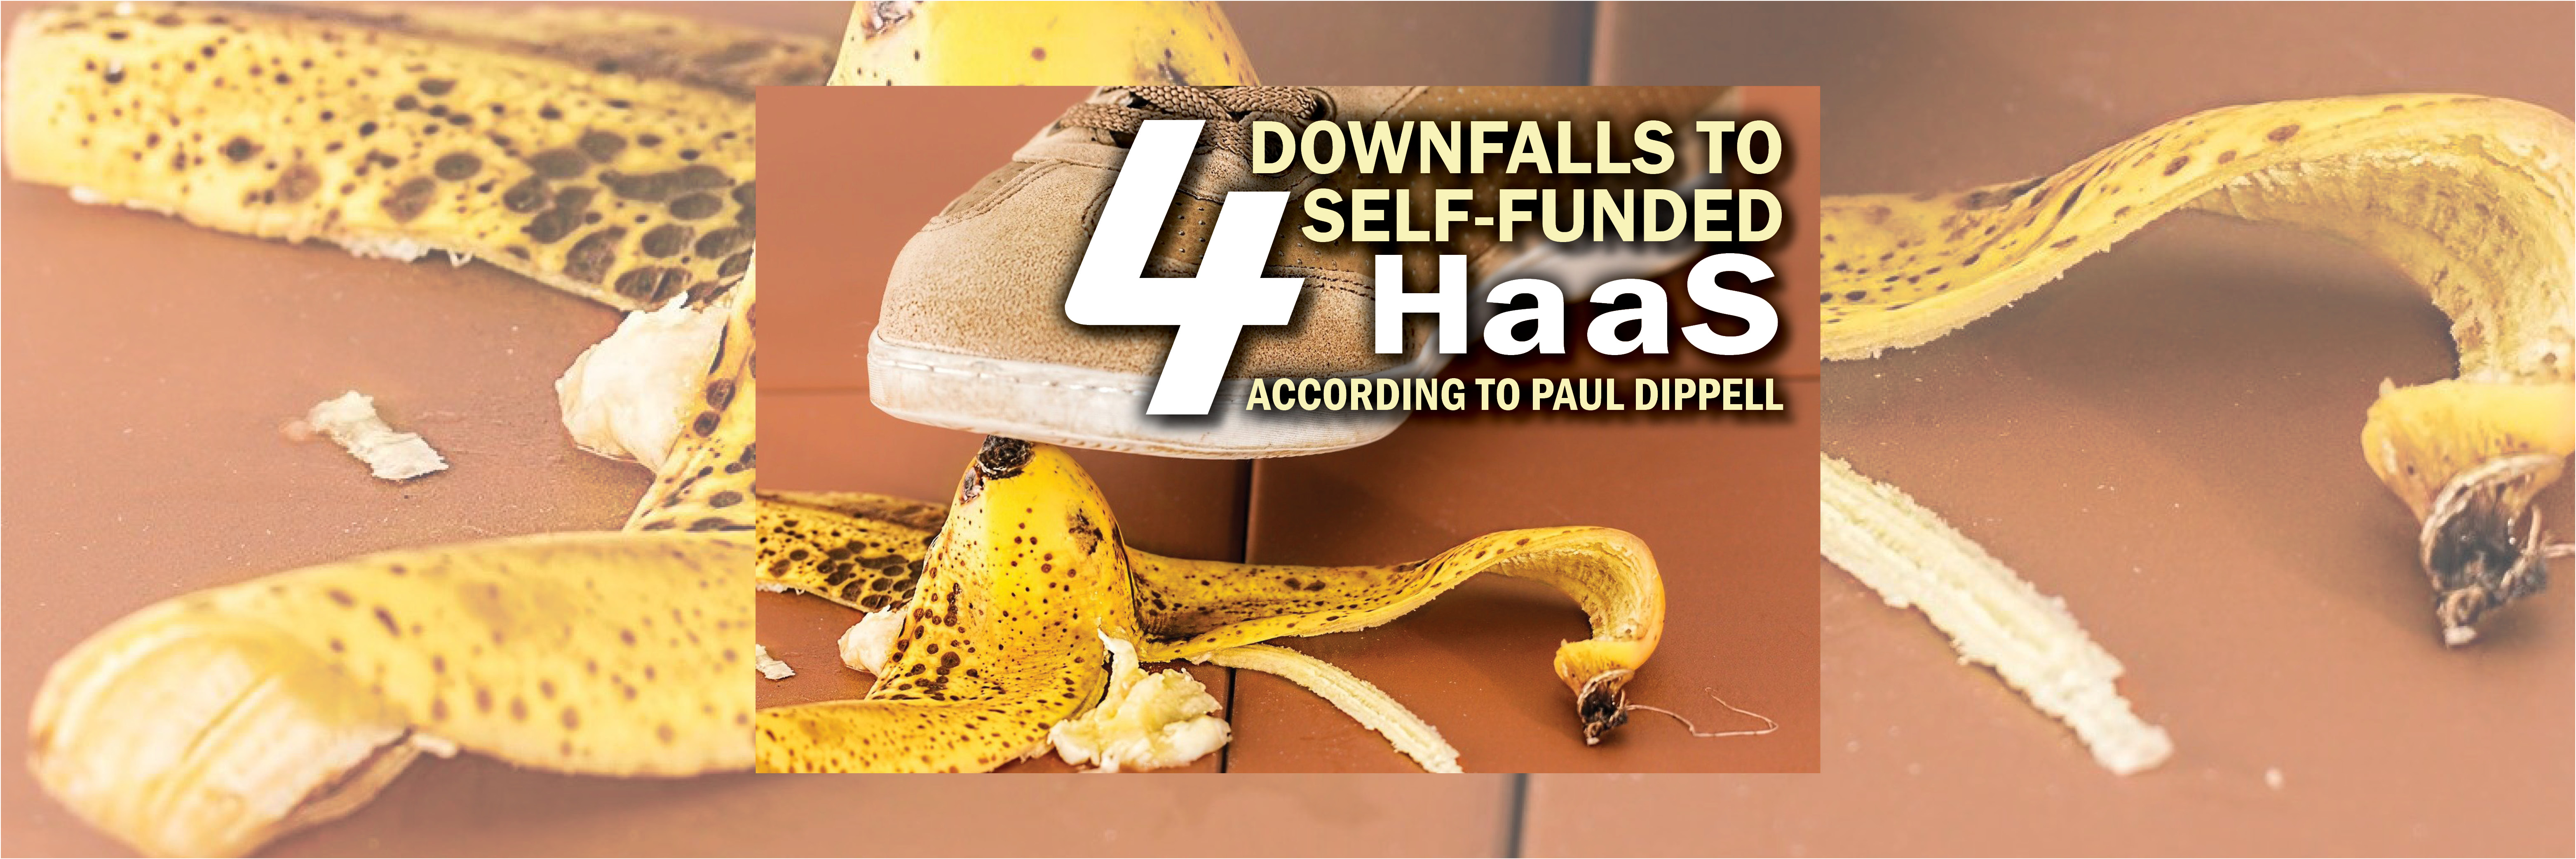 Four Downfalls to Self-Funded HaaS According to Paul Dippell